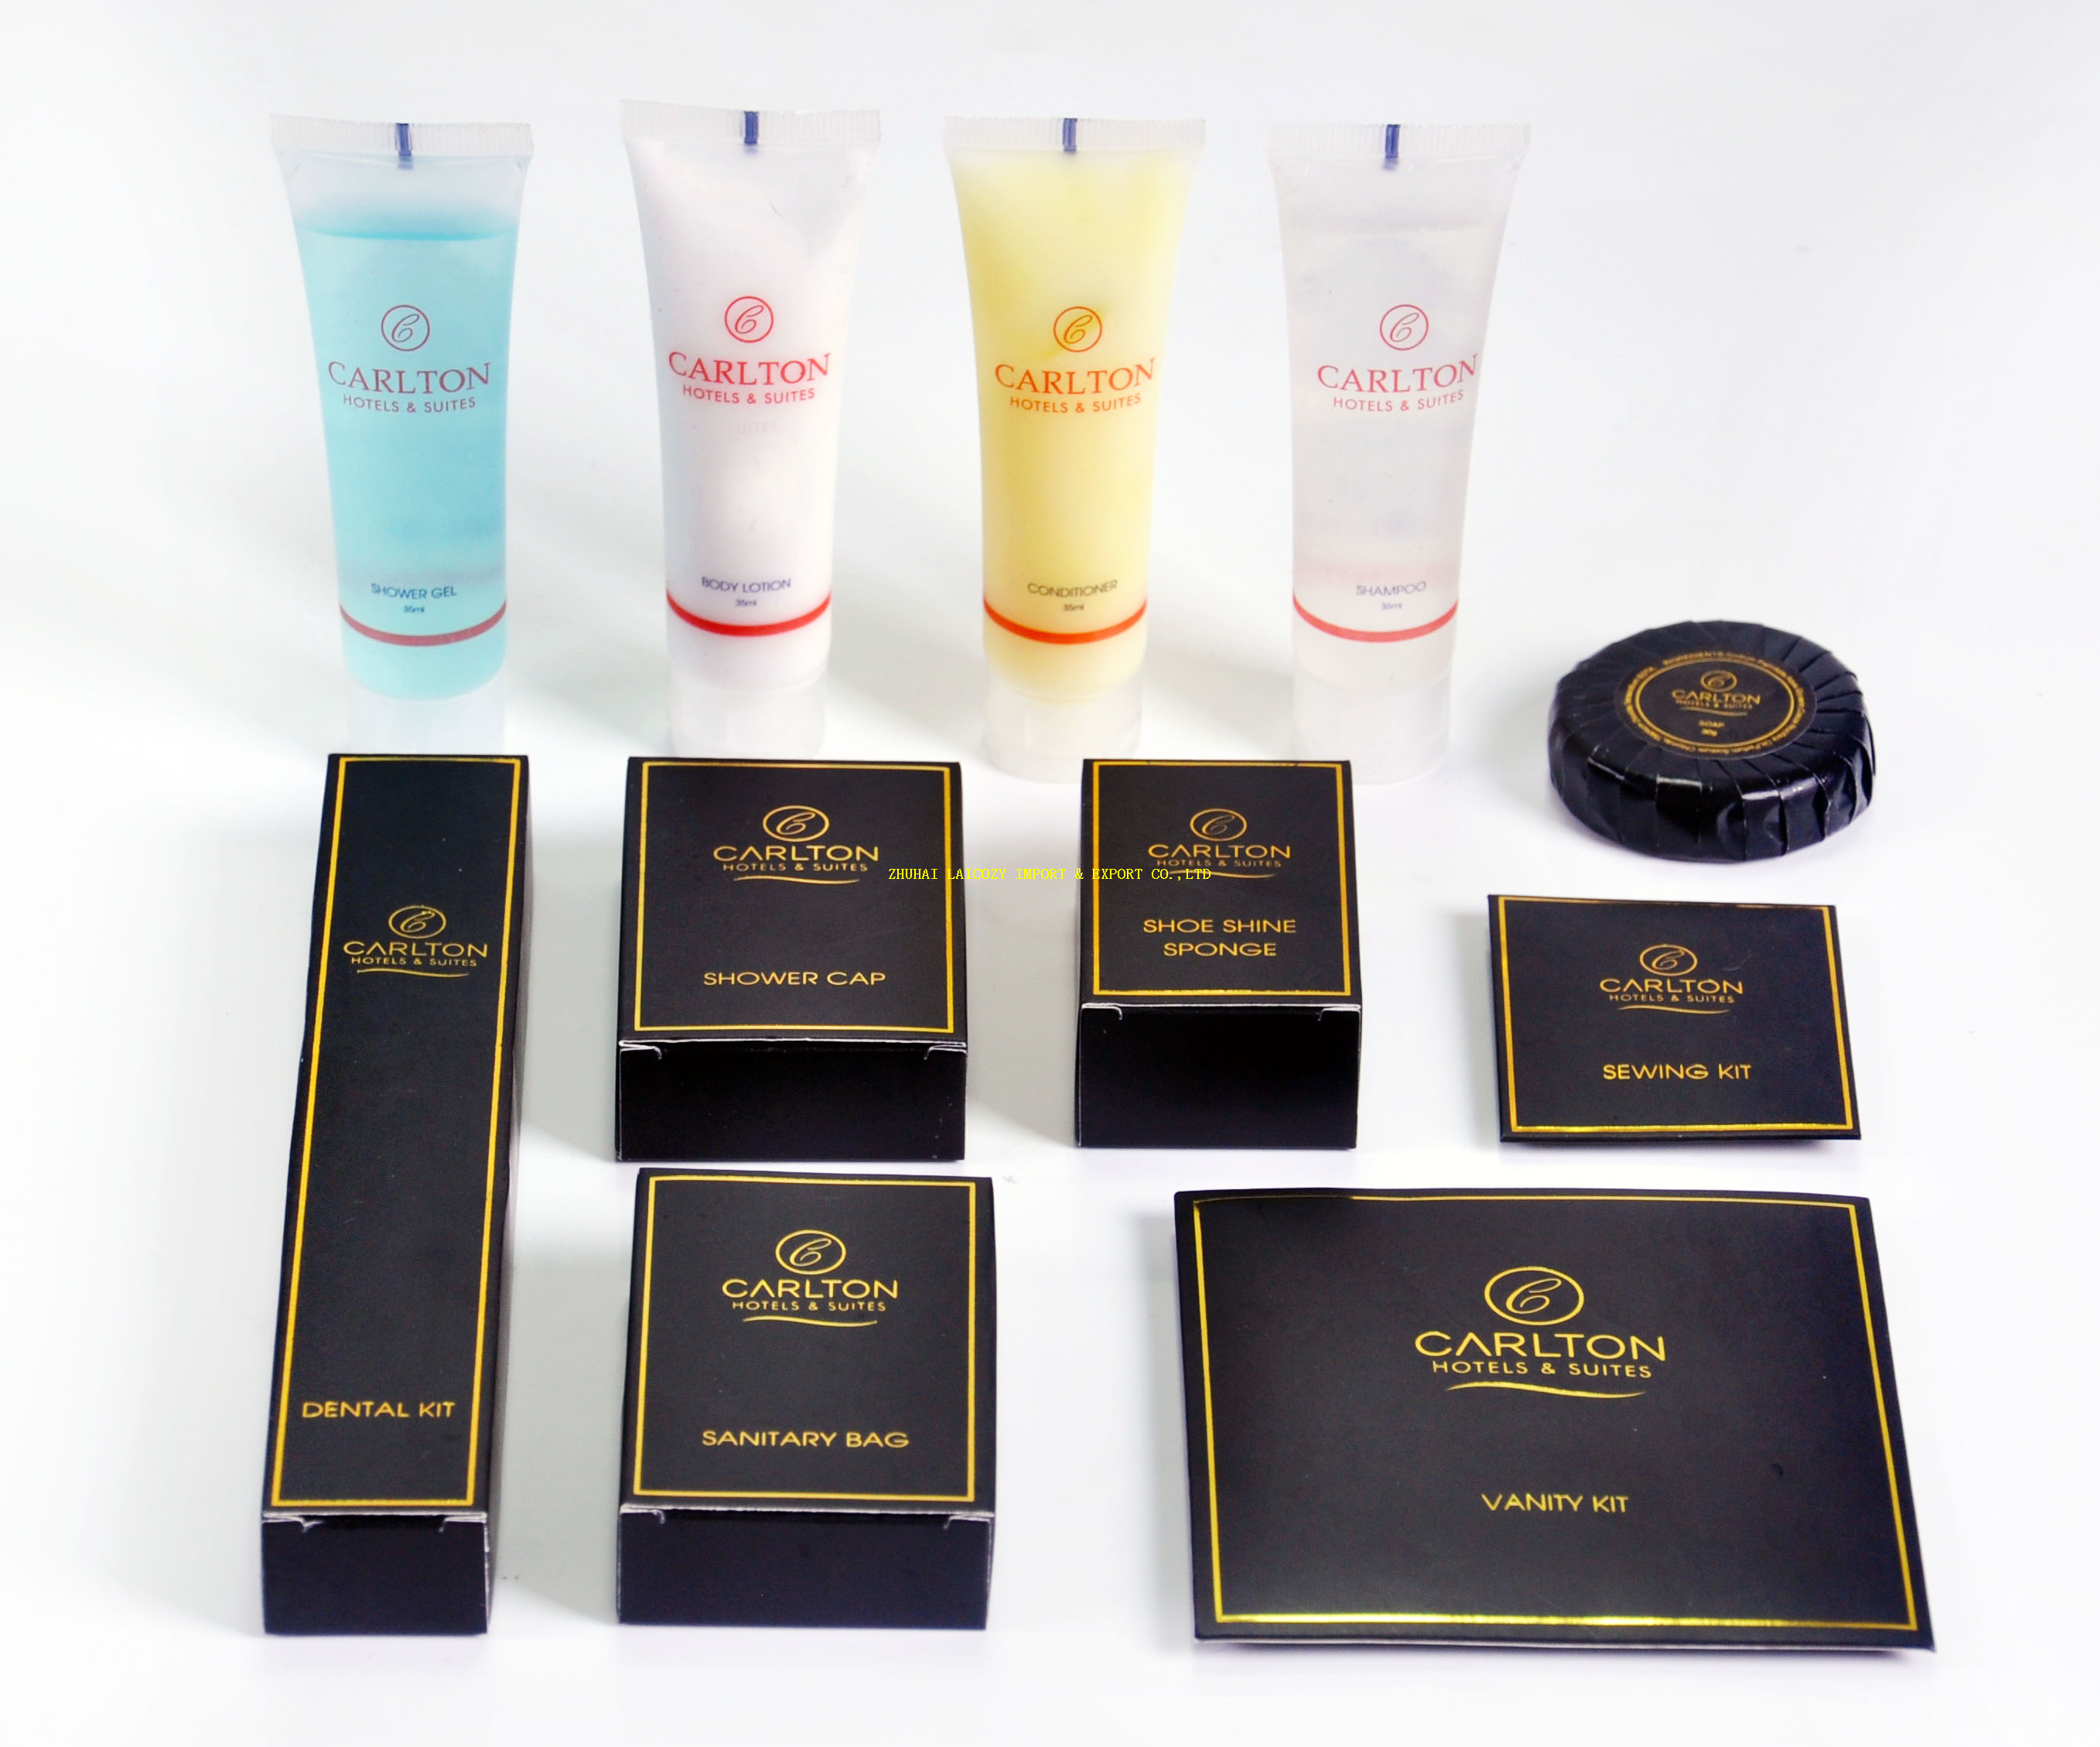 Luxury calton hotel bathroom amenities set